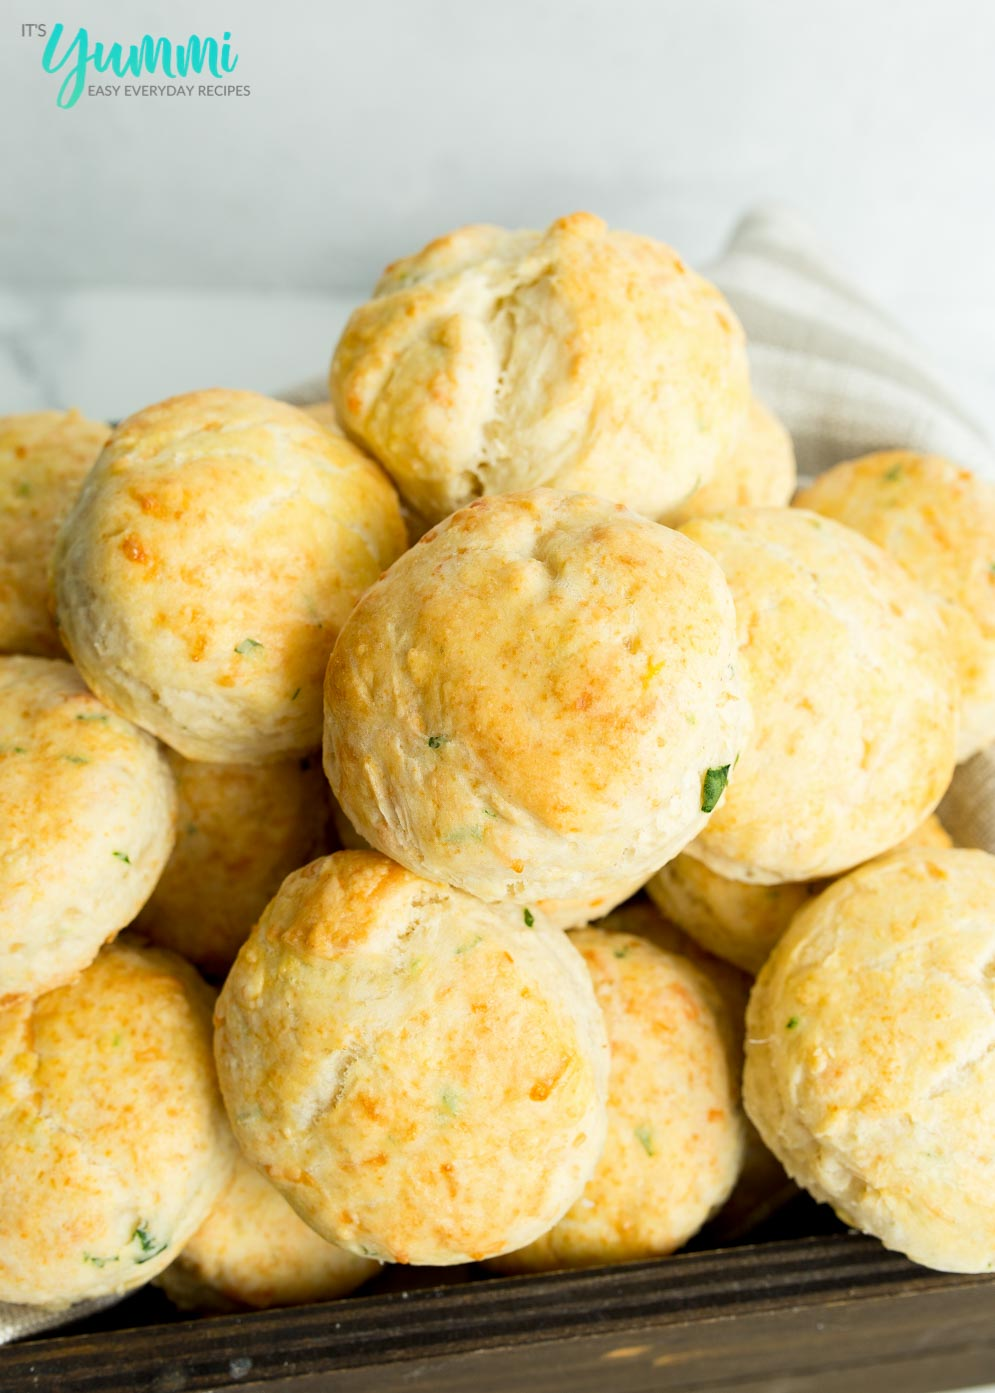 Close-up of Baked Cheddar Bay Biscuits in wooden basket